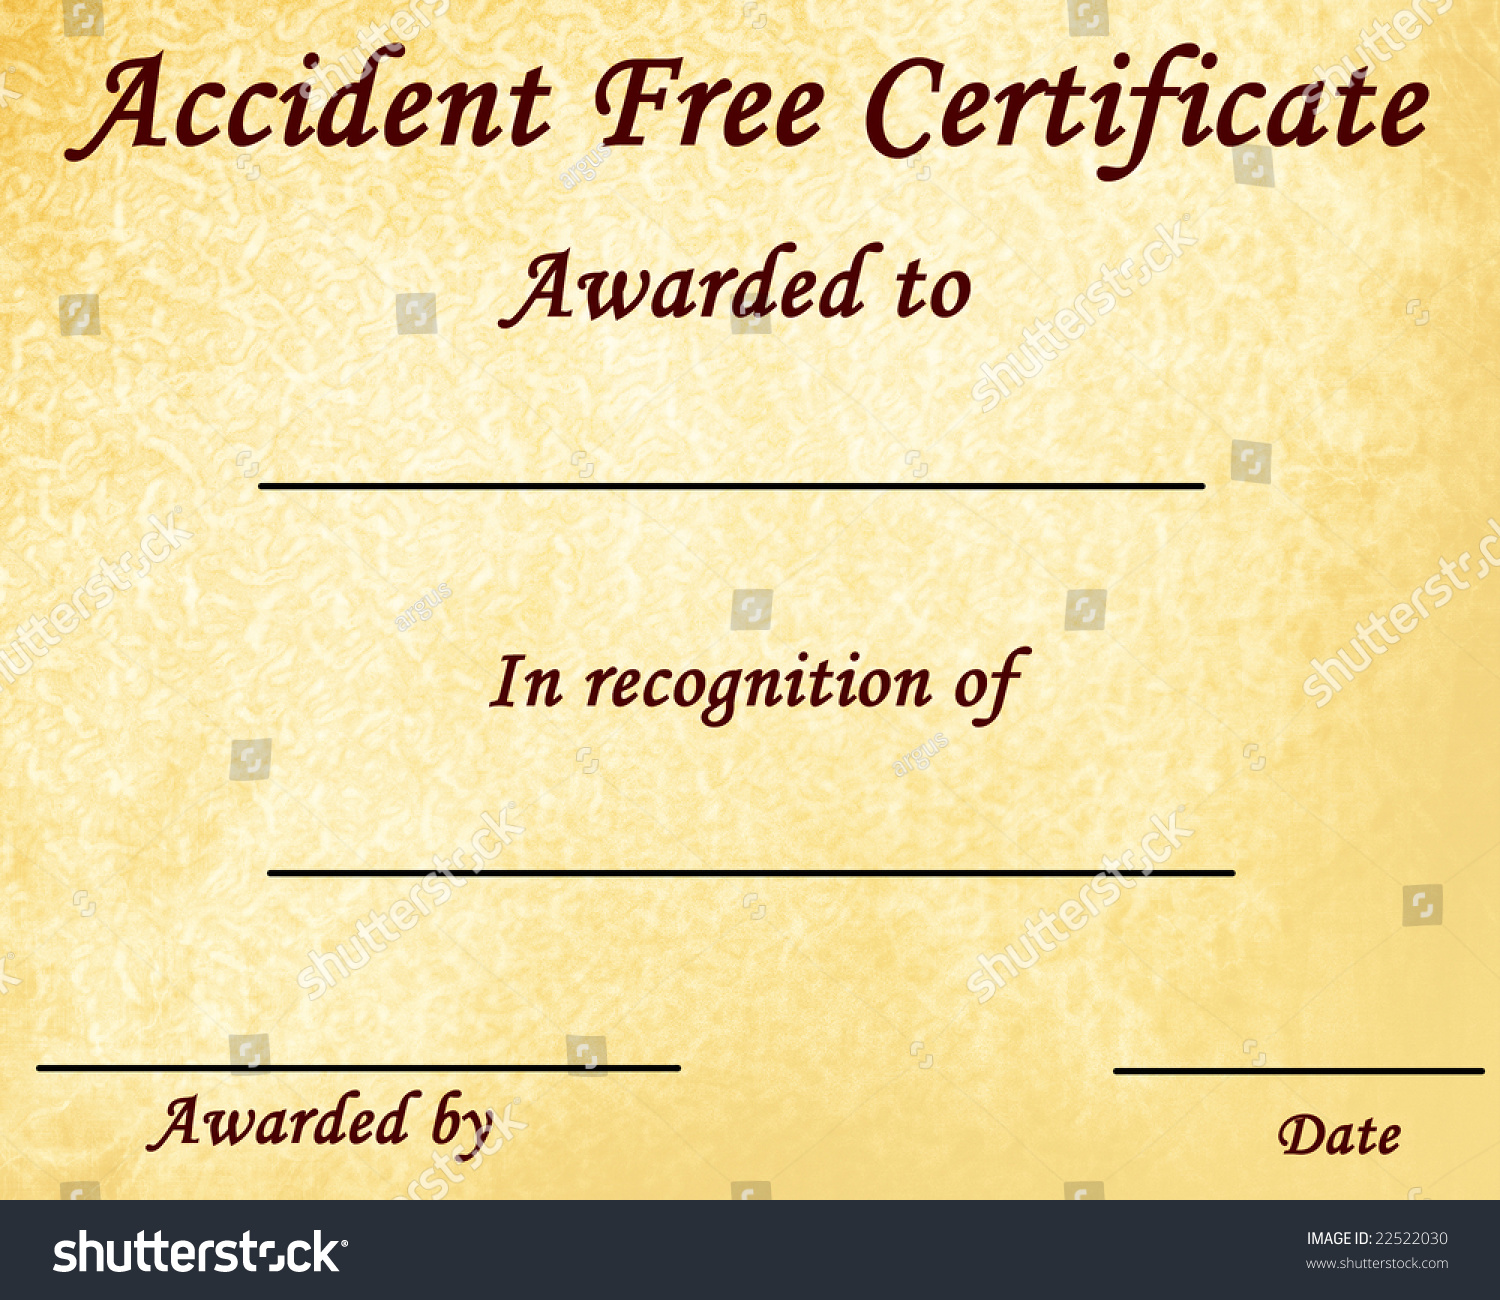 Accident Free Certificate Some Stains On Stock Illustration 22522030 ...